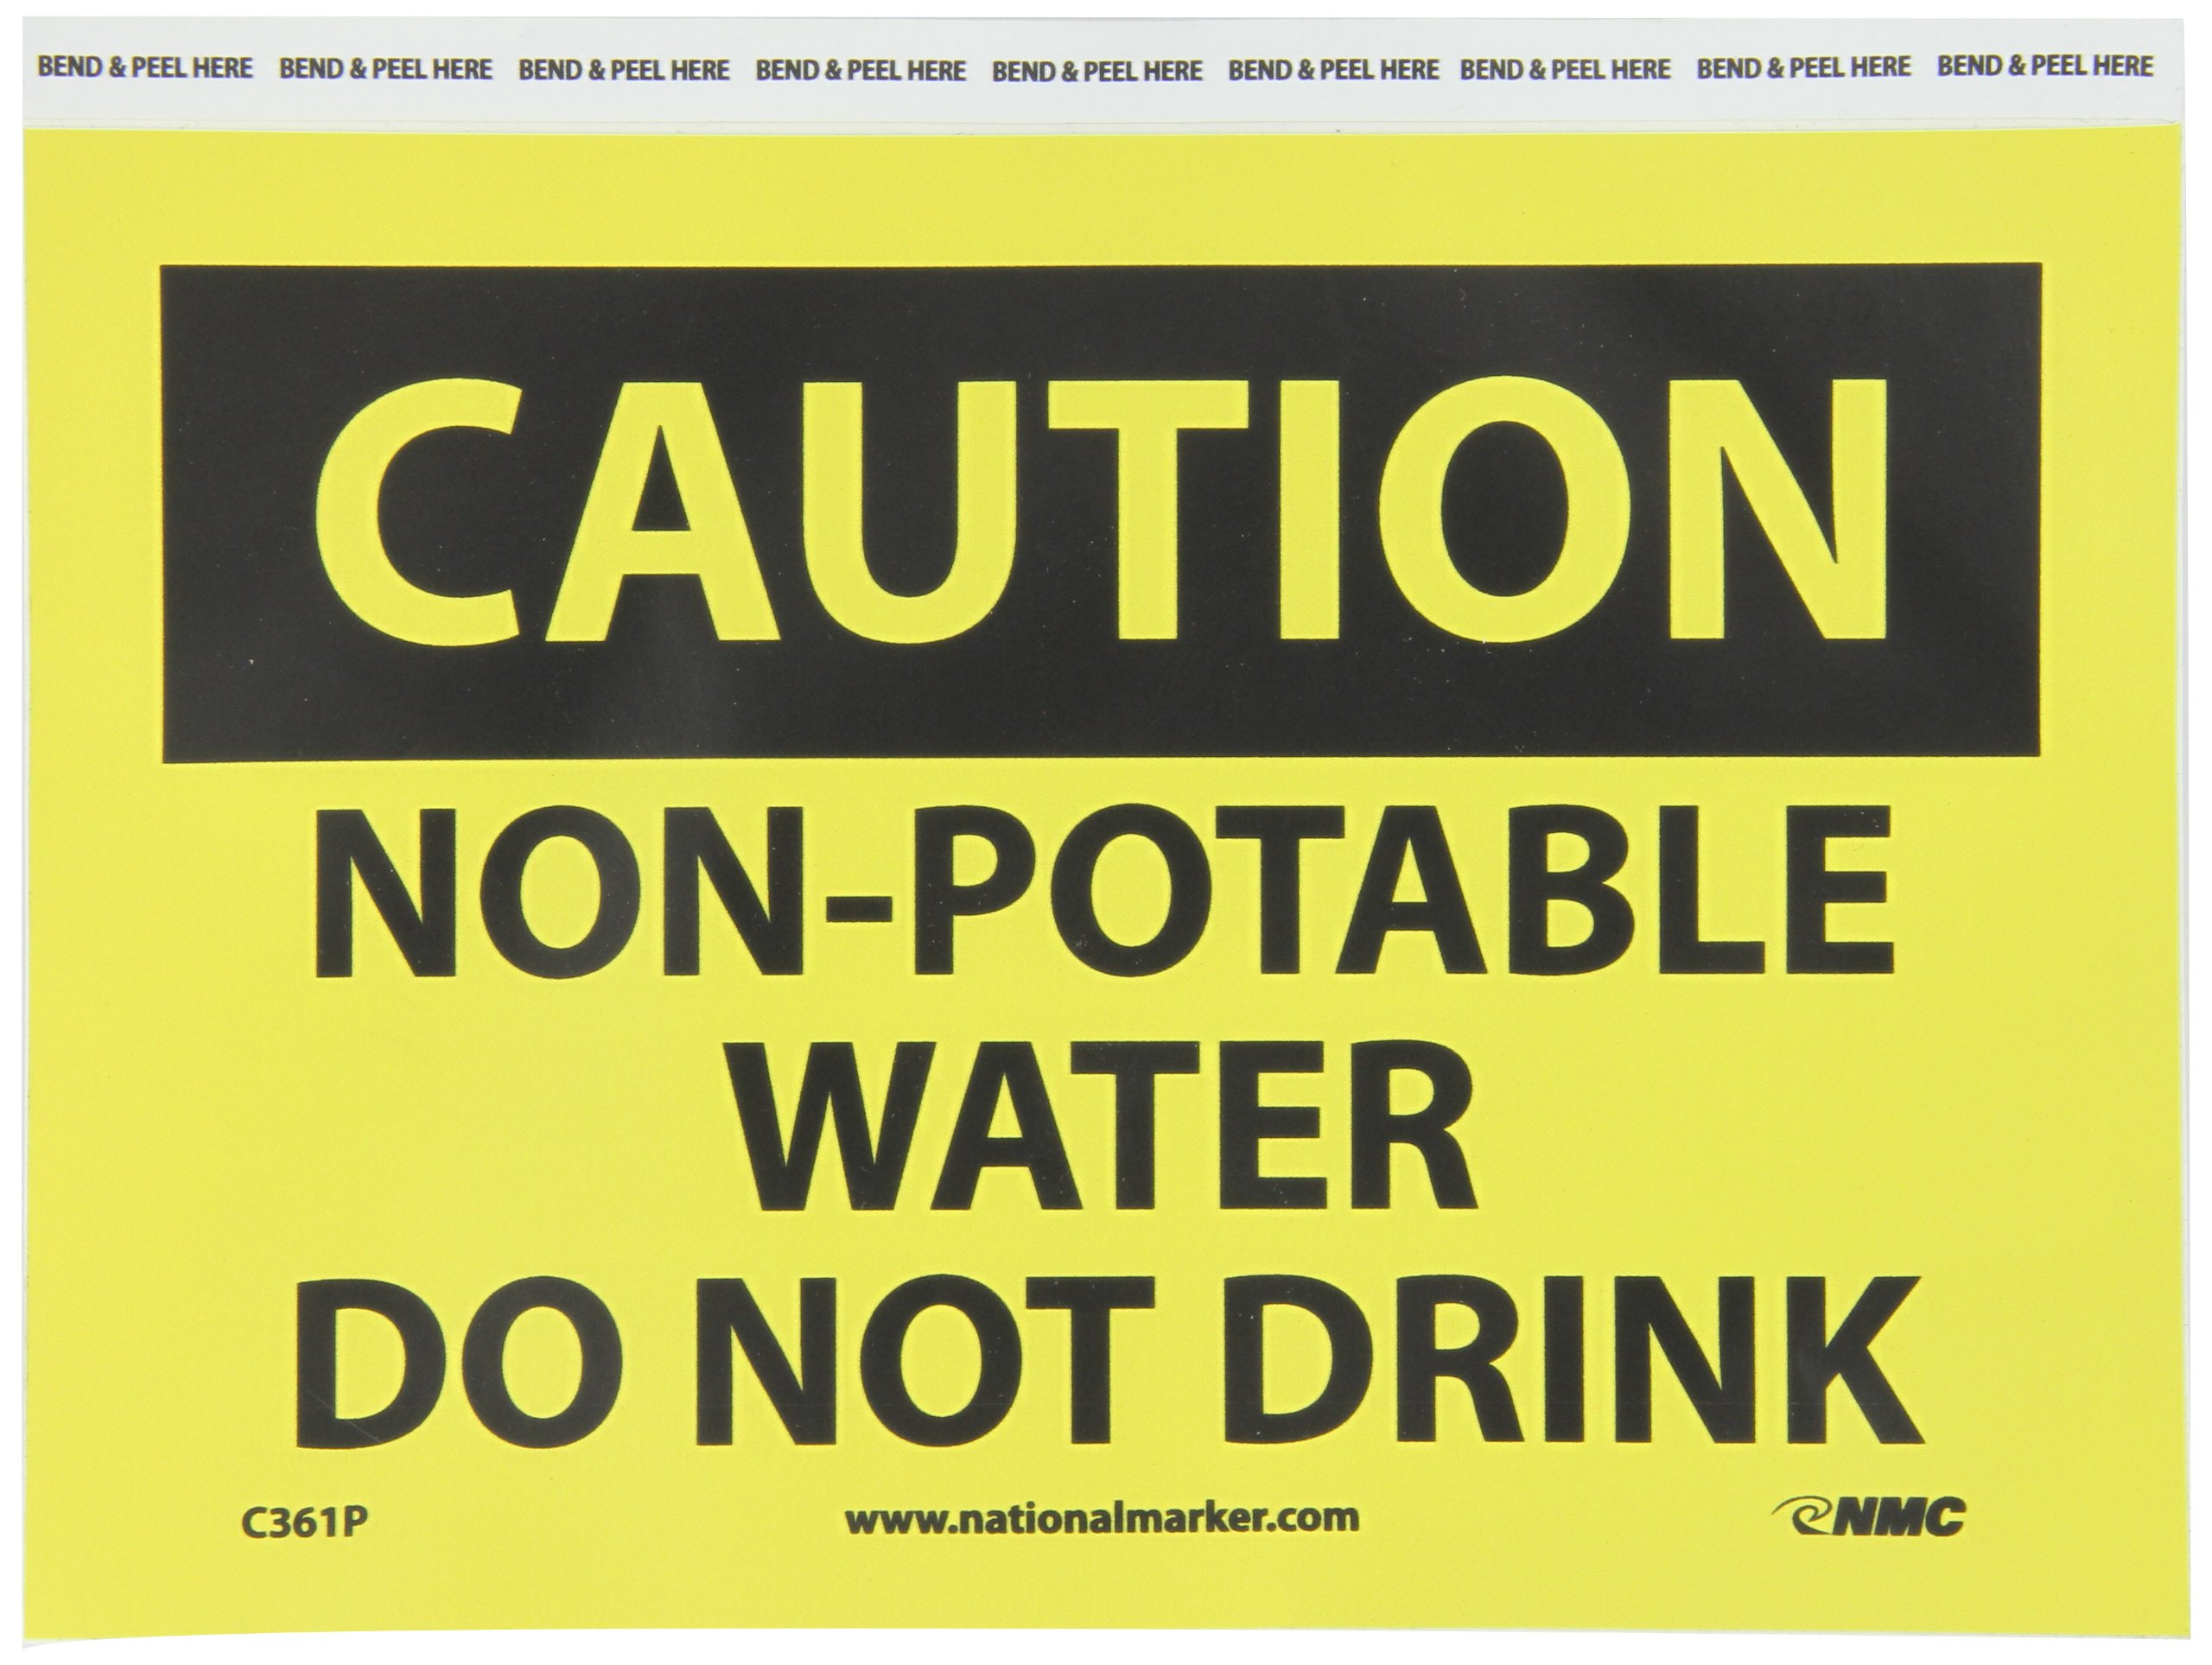 NMC C361P CAUTION - NON POTABLE WATER - DO NOT DRINK – 10 in. x 7 in. PS Vinyl Caution Sign with Yellow/Black Text on Black/Yellow Base